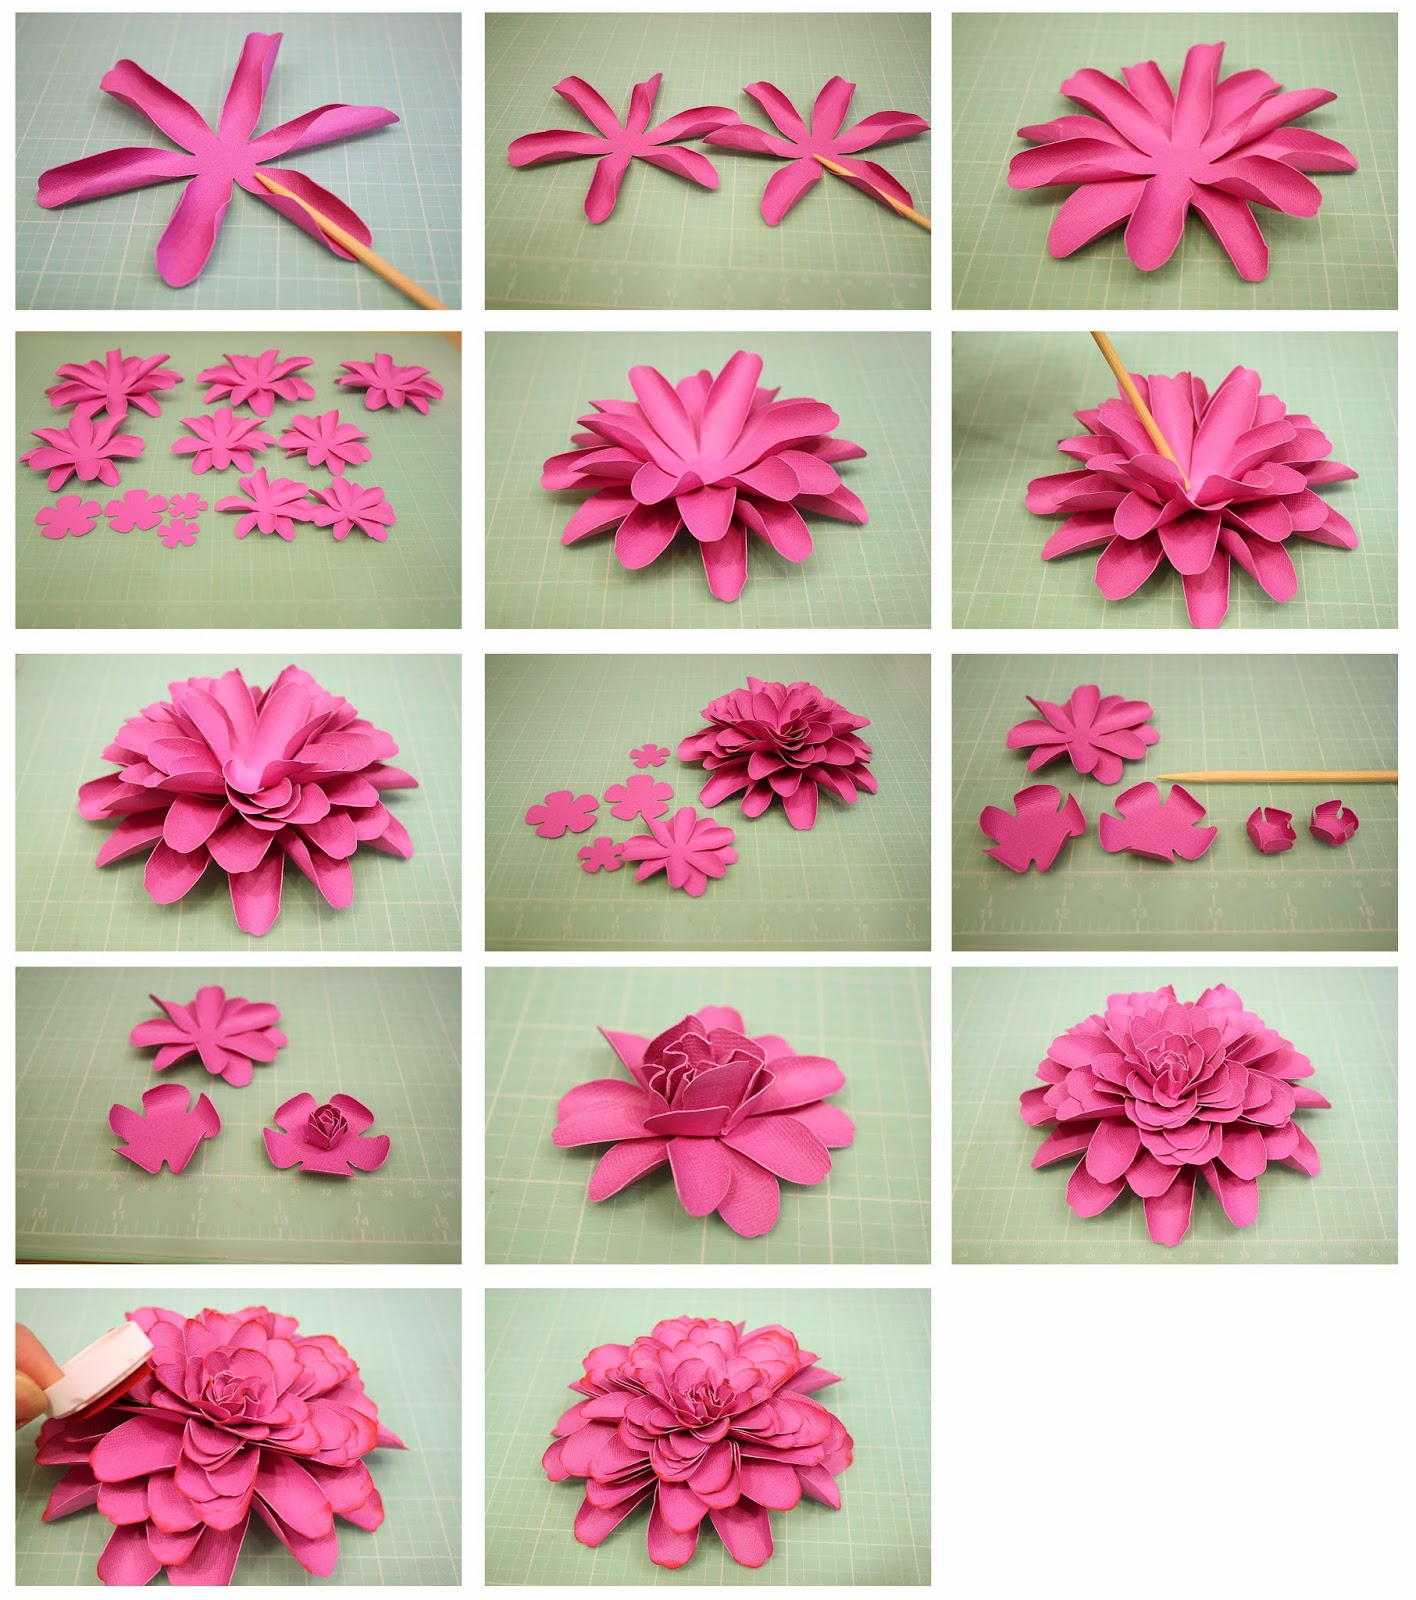 Bits of paper 3d dahlia another mum paper flower cut out all the pieces then use your skewer or pencil to shape the petals by placing it in the center of the petal and pushing the sides up mightylinksfo